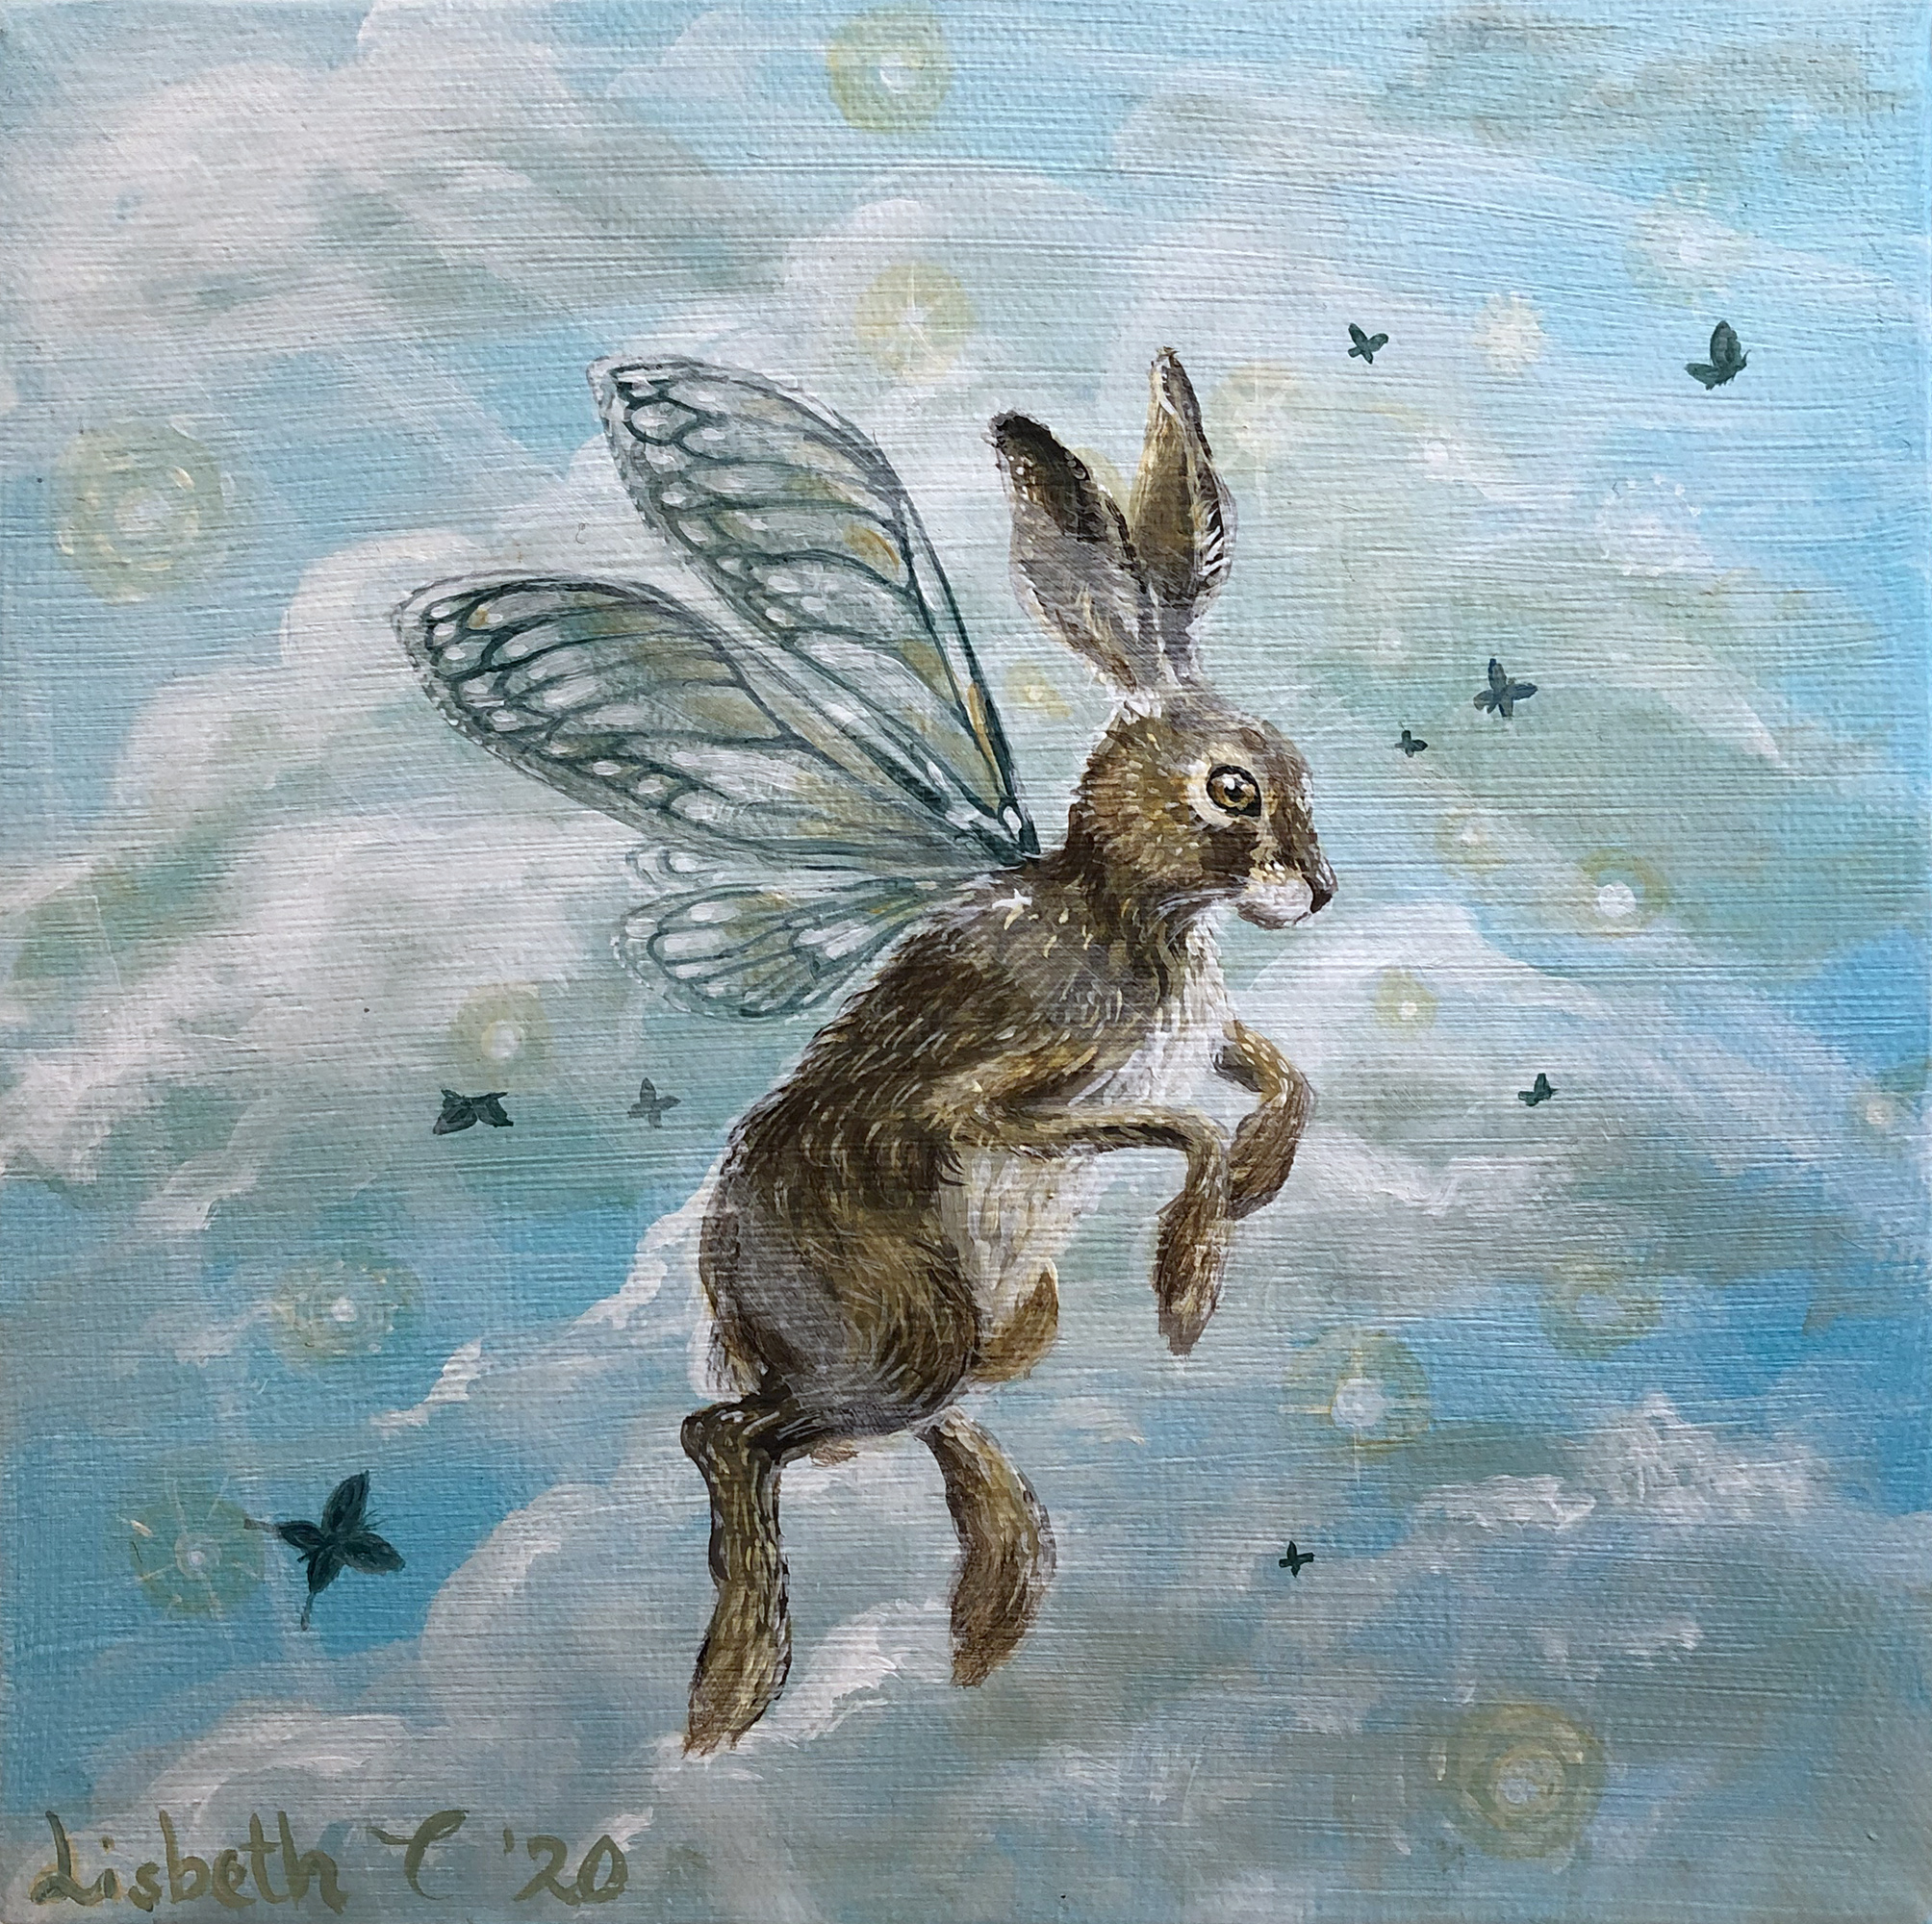 The fearless hare